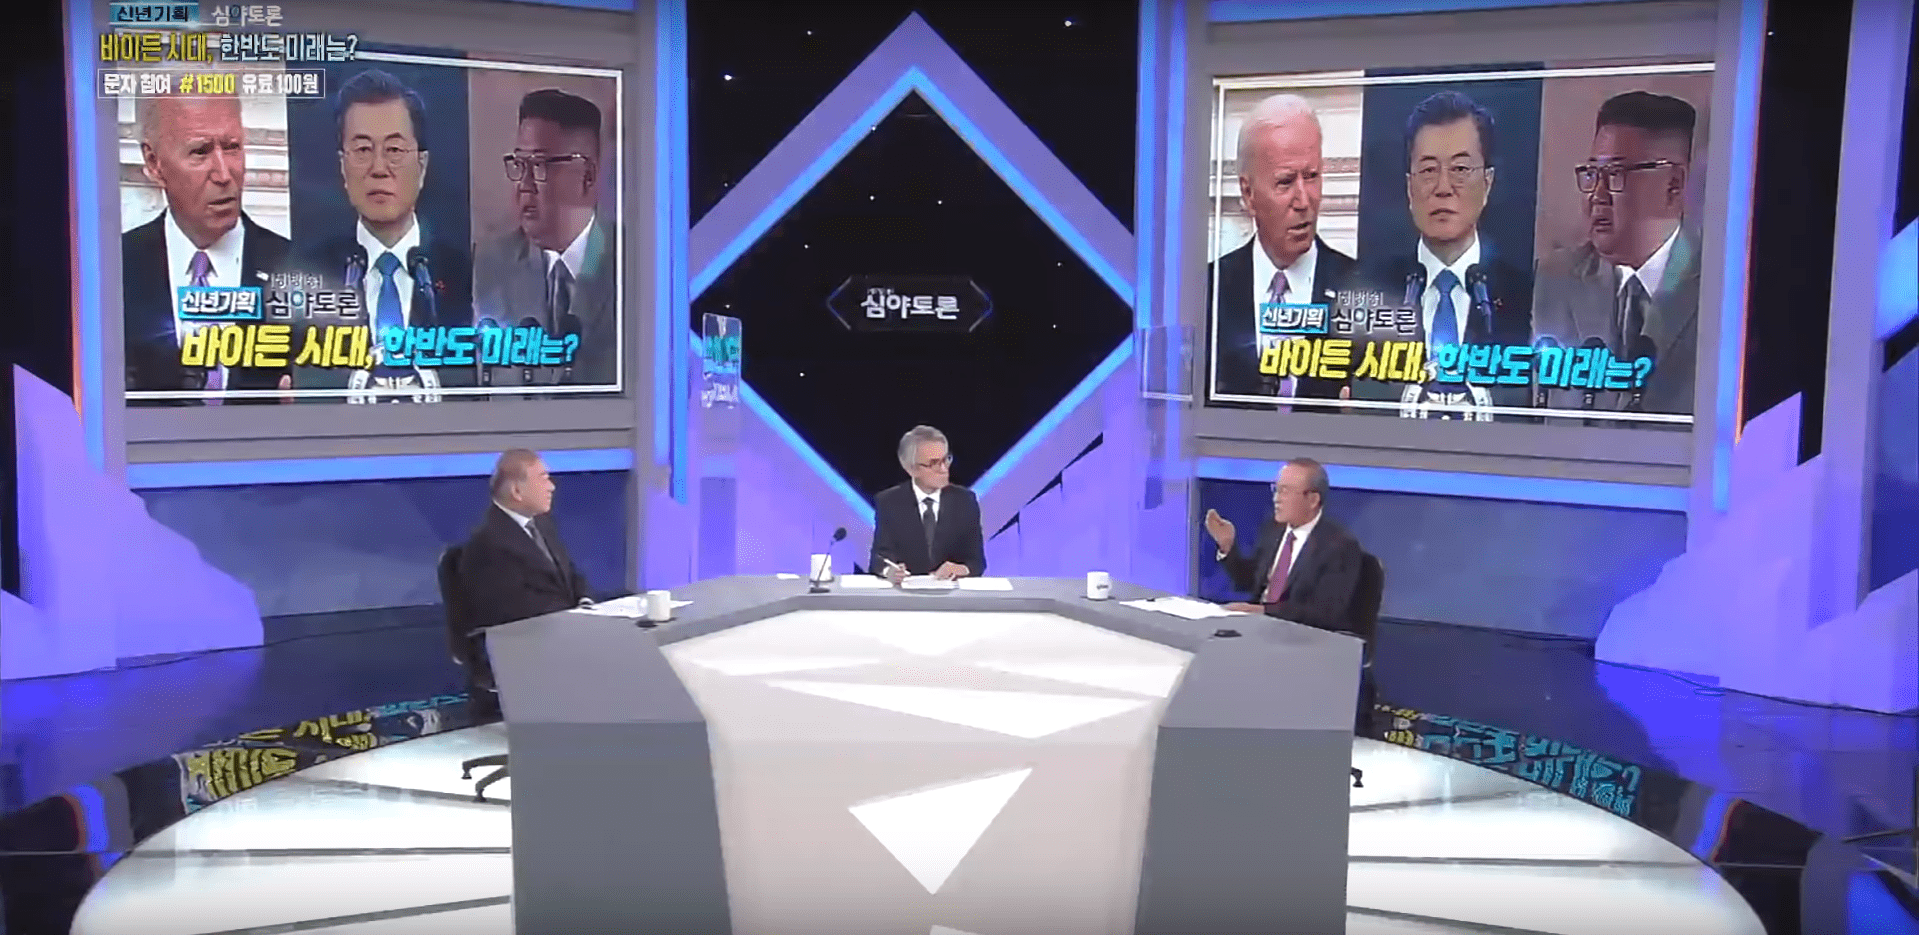 Debate on the Future of the Korean Peninsula and Biden Administration